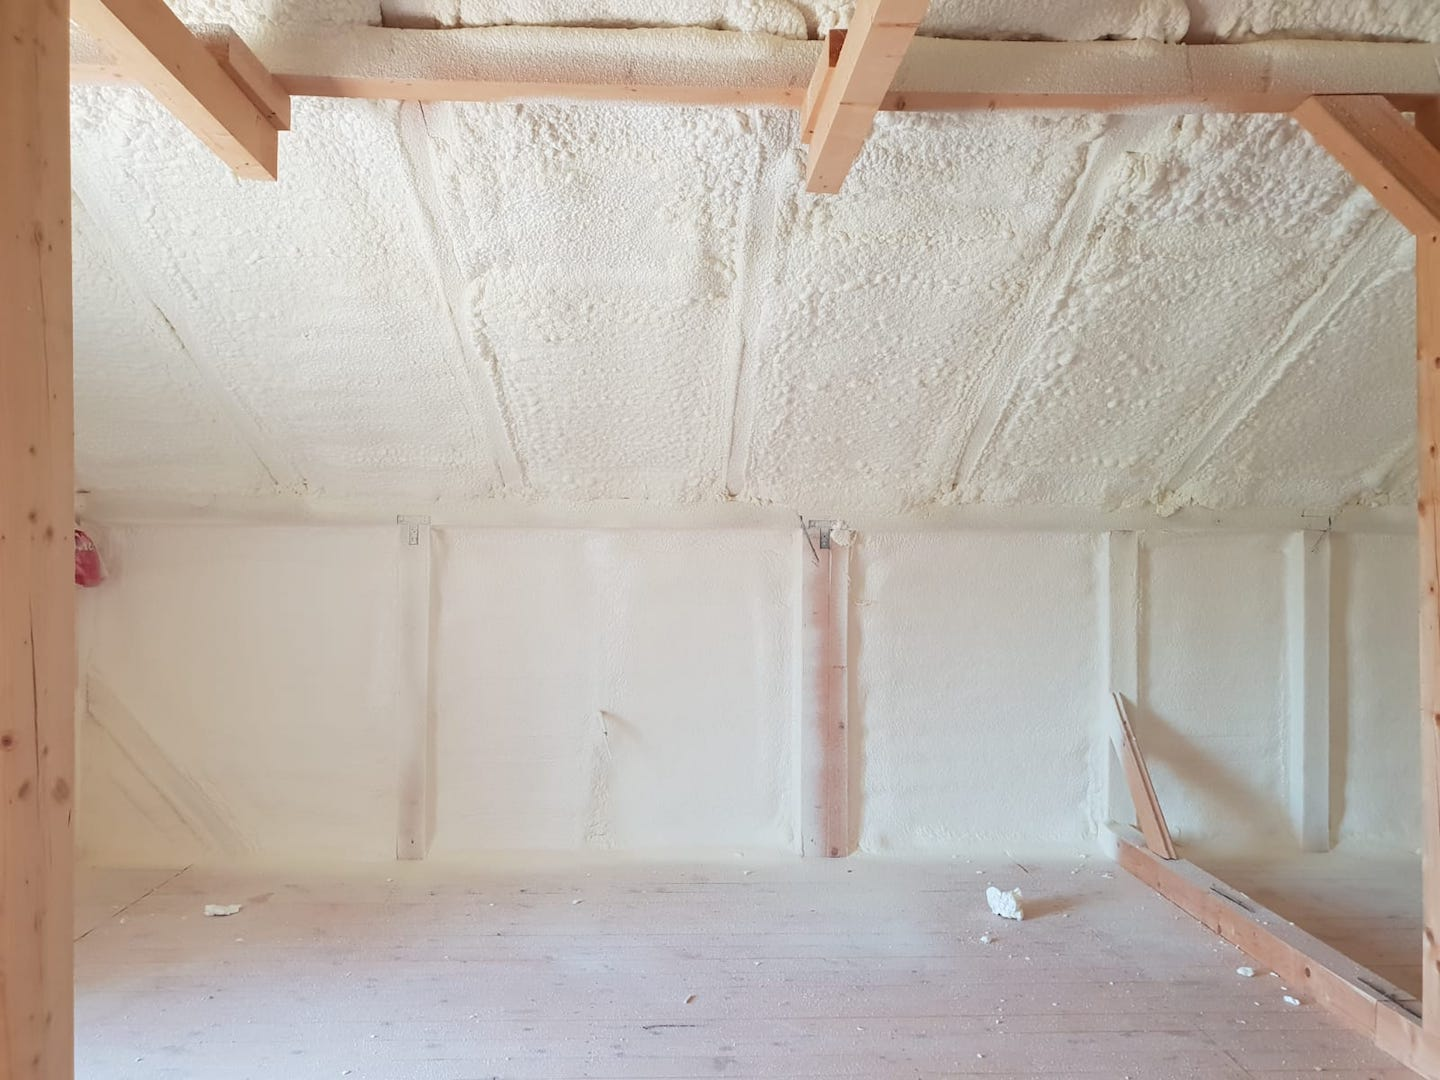 Residential Closed Cell Insulation St. Louis